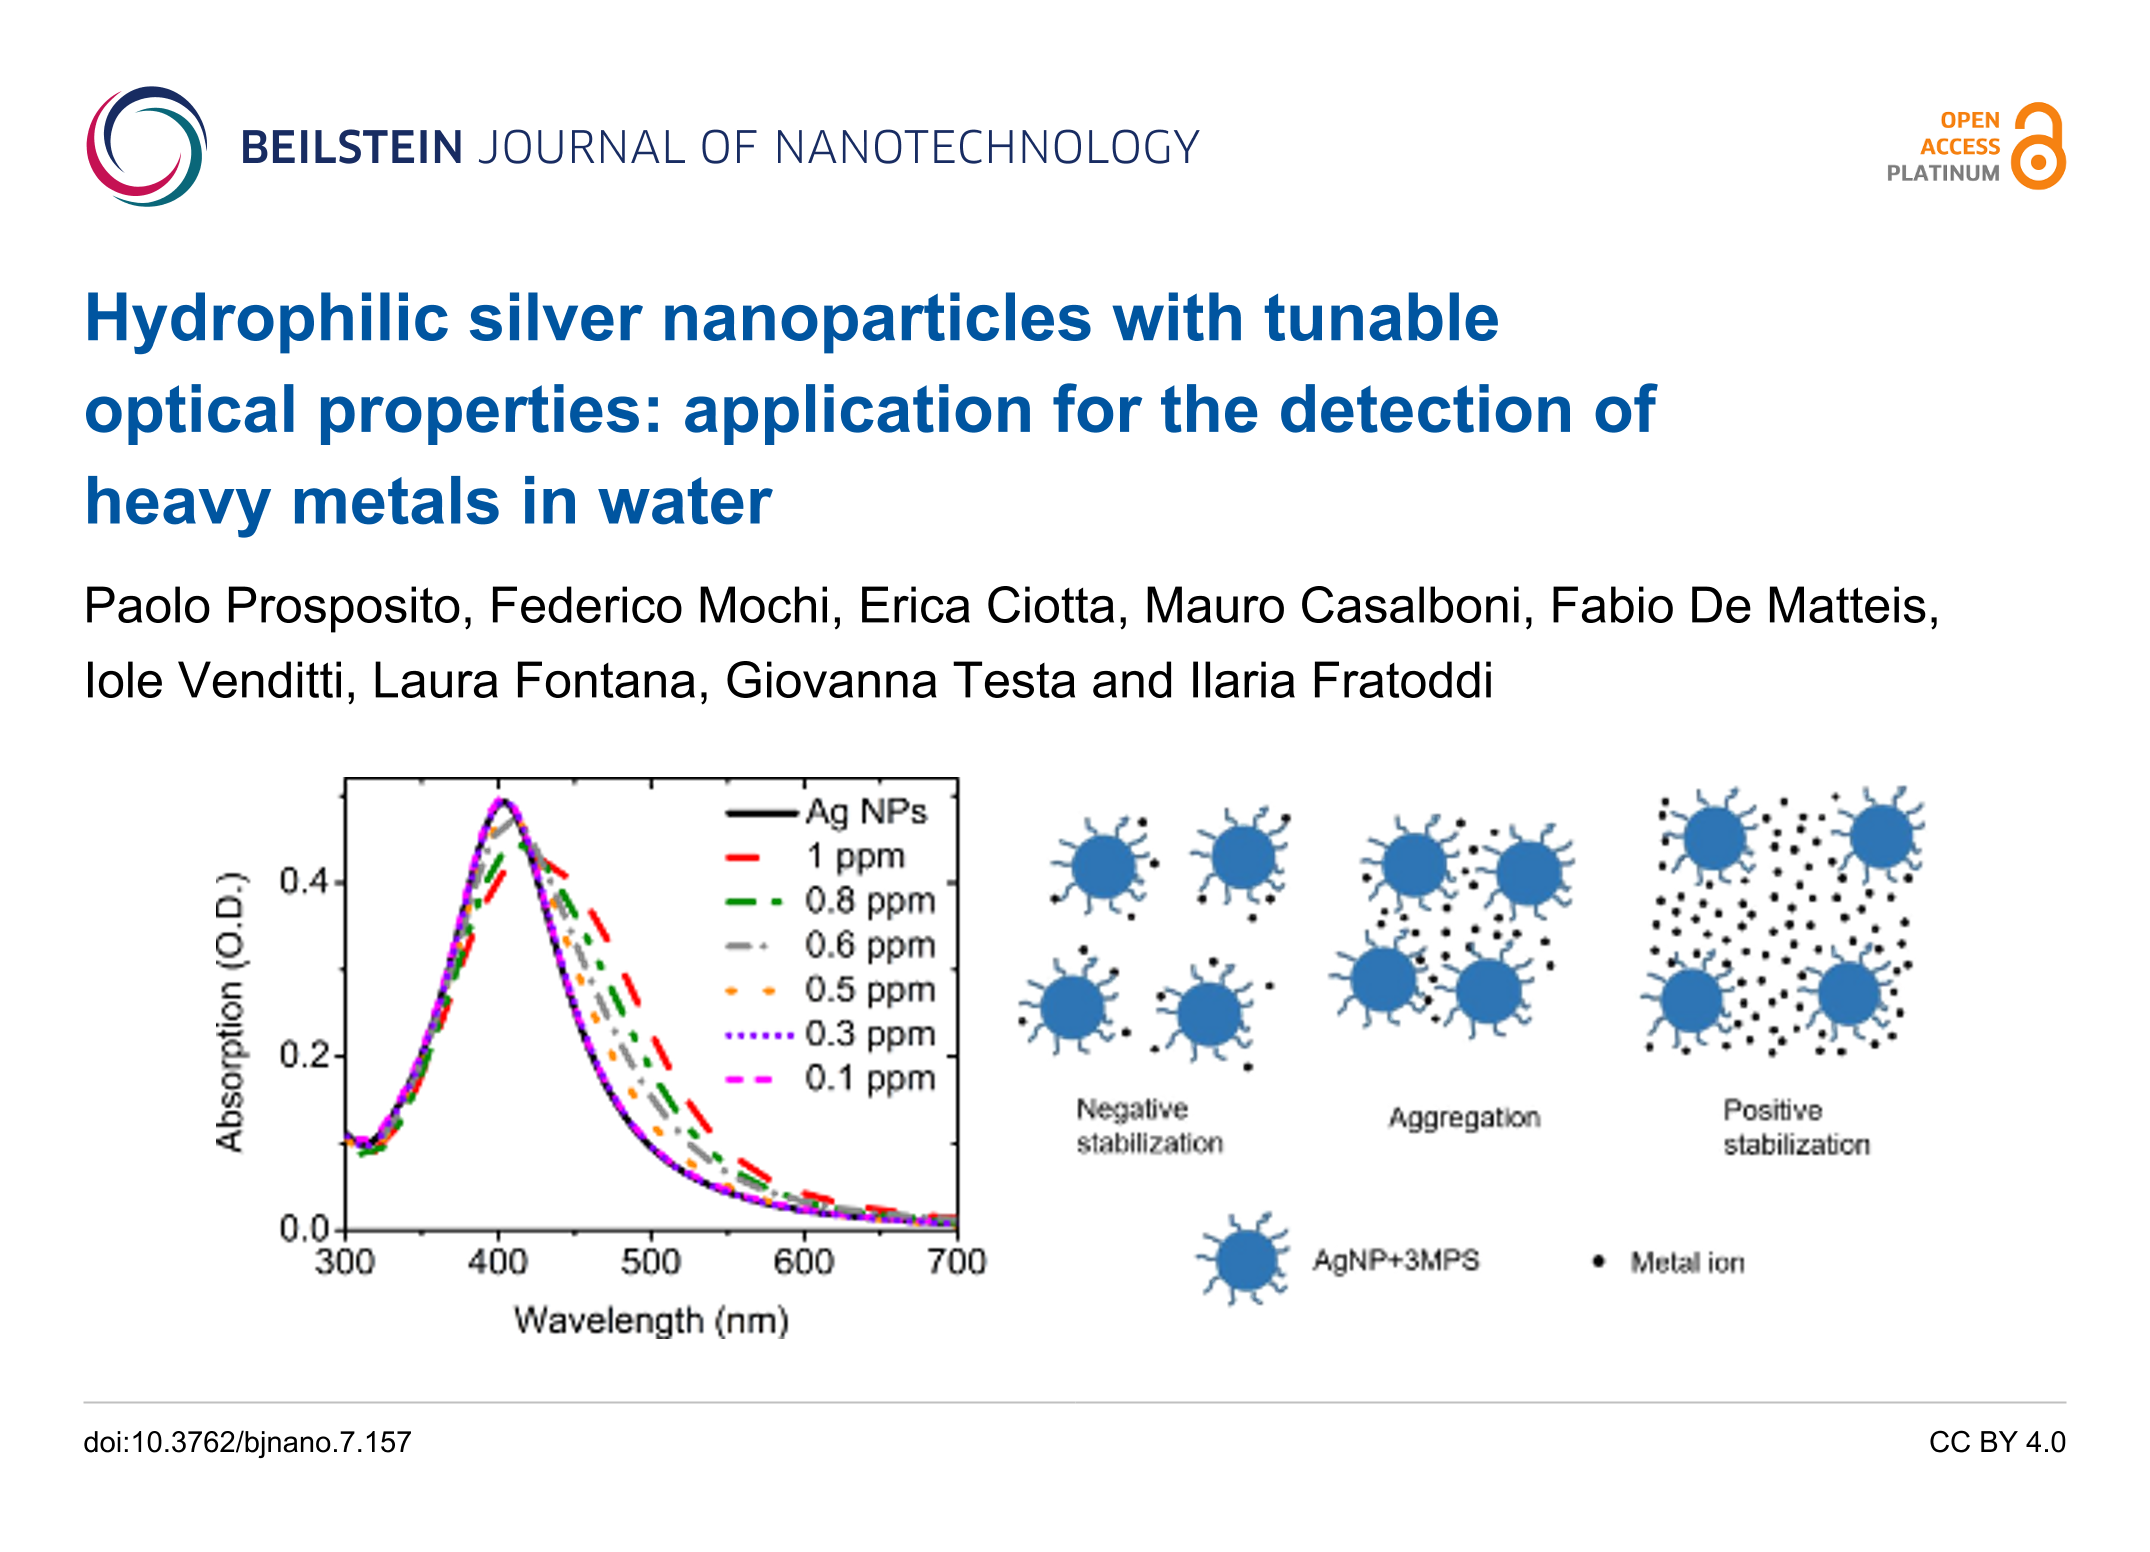 Hydrophilic silver nanoparticles with tunable optical